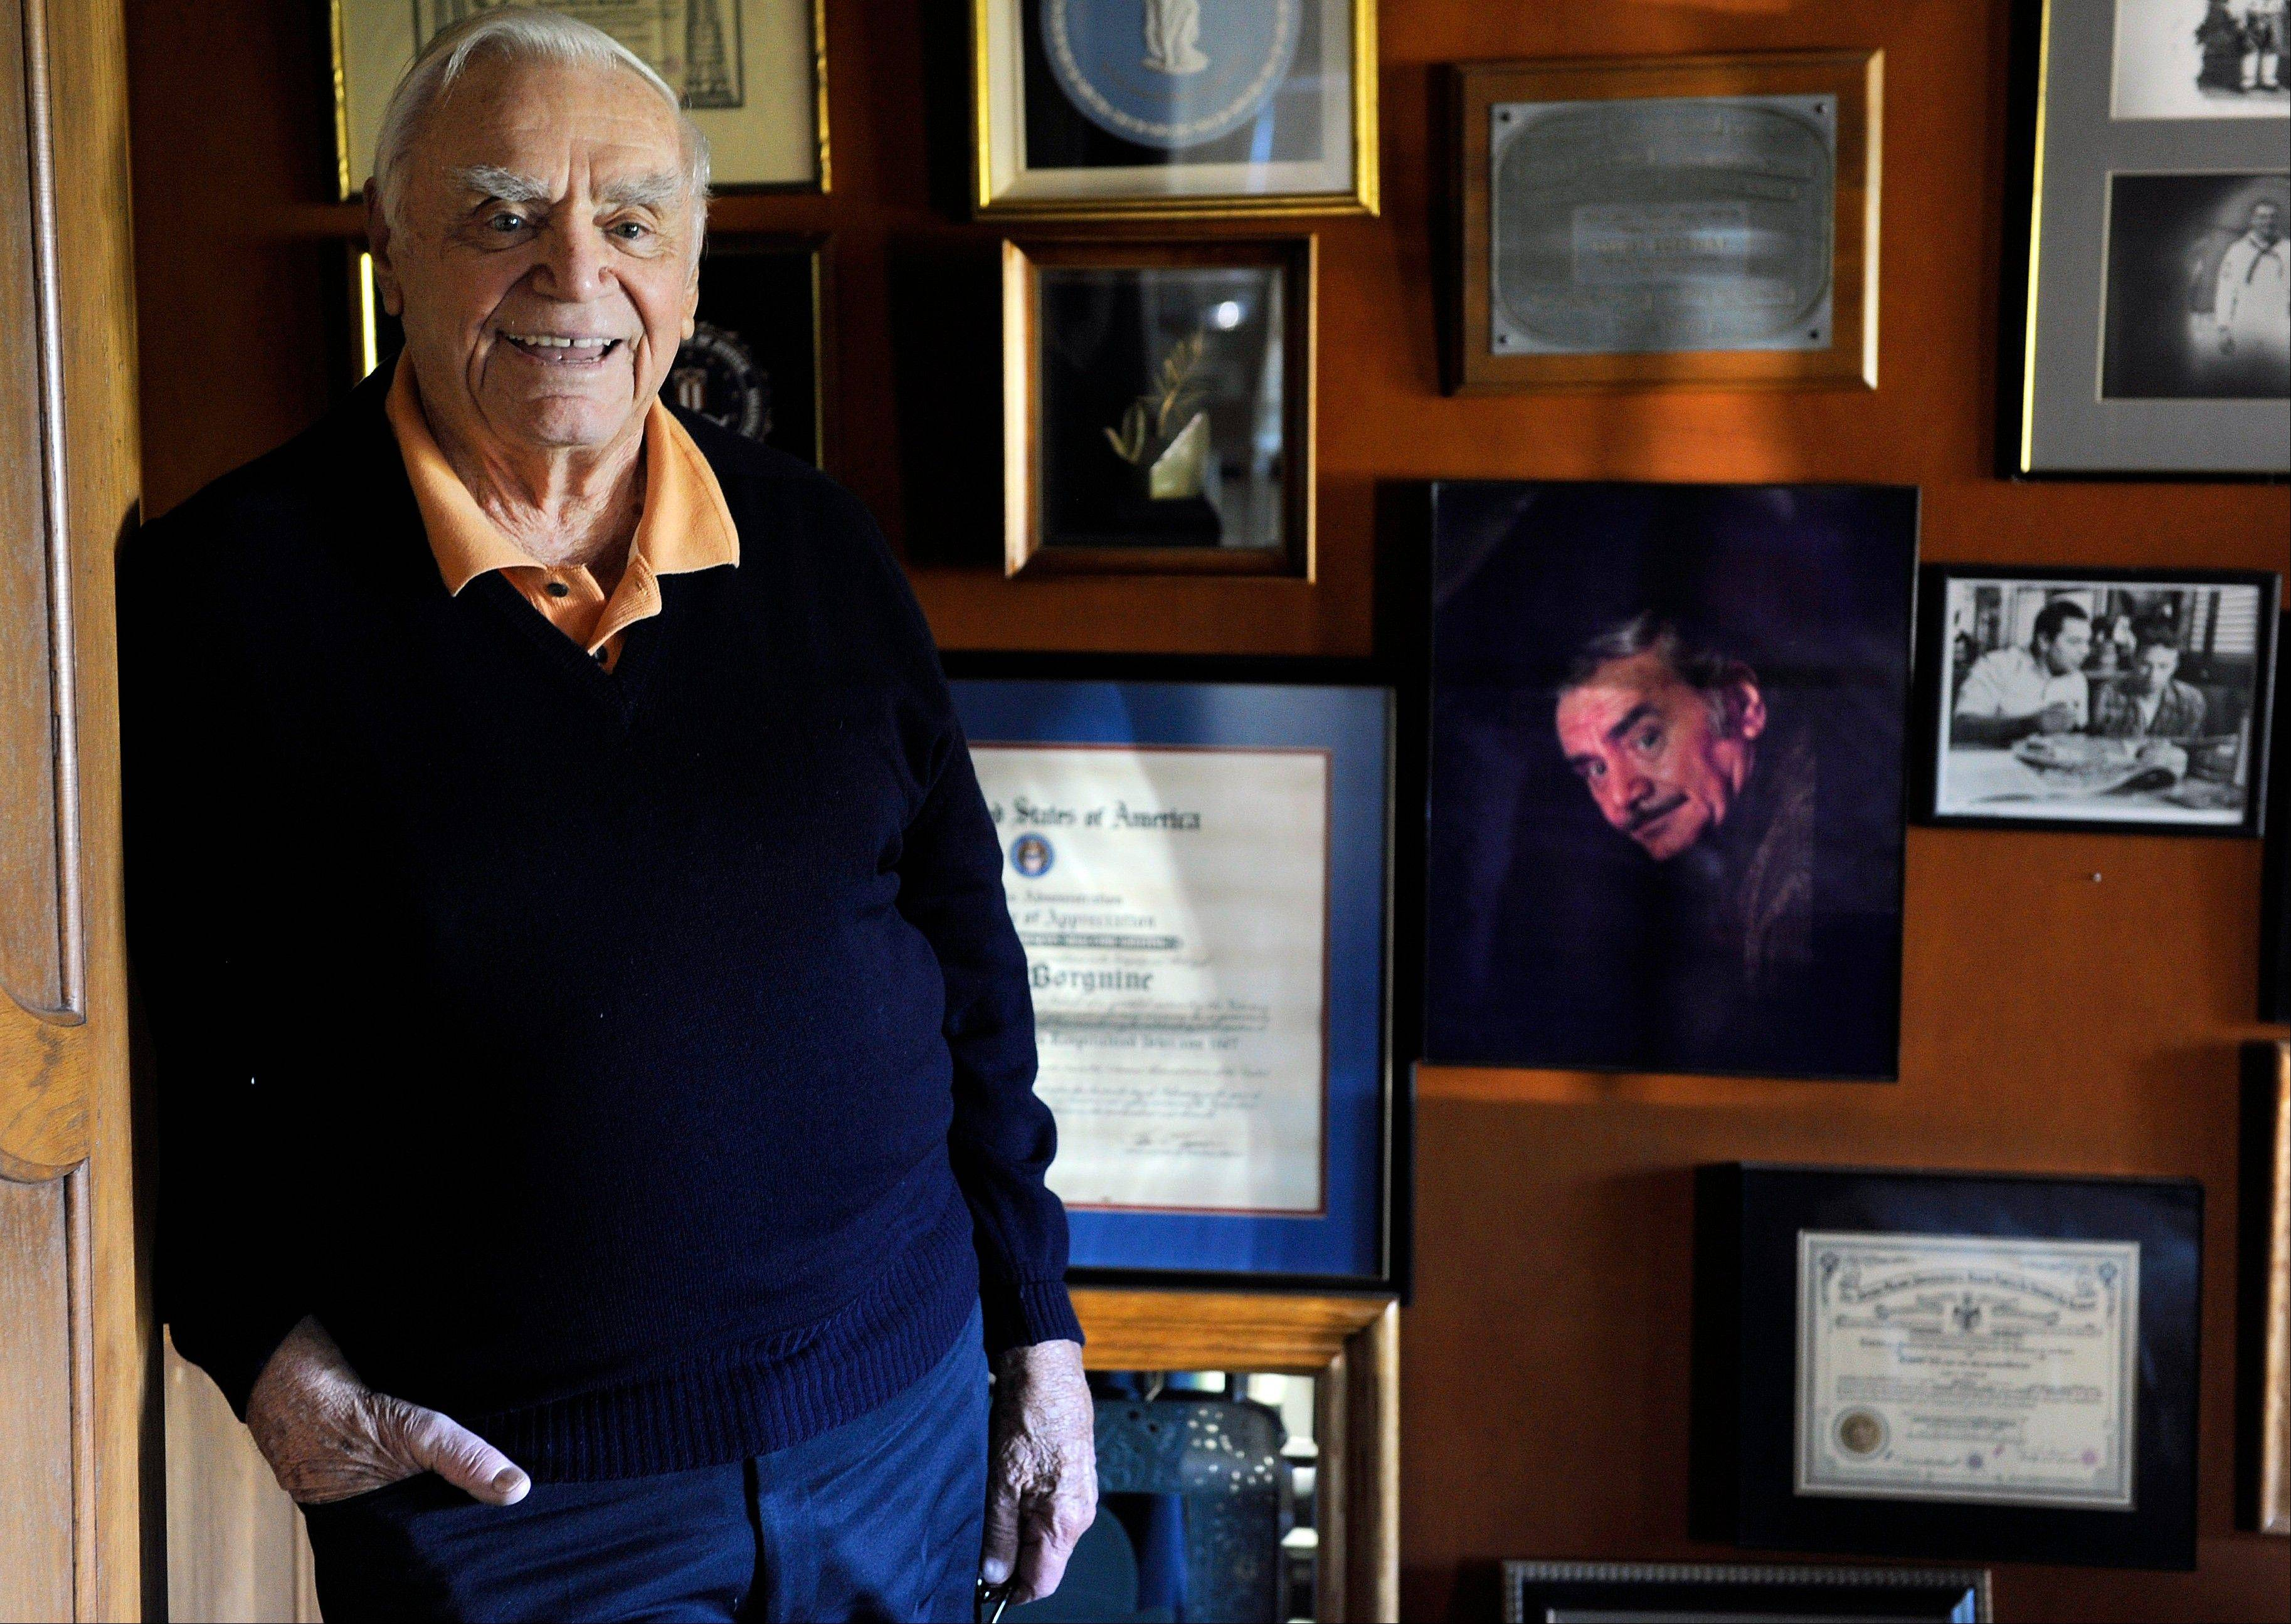 In this Oct. 26, 2010, file photo, actor Ernest Borgnine poses for a portrait at his home in Beverly Hills, Calif. A spokesman said Sunday that Borgnine has died at the age of 95.